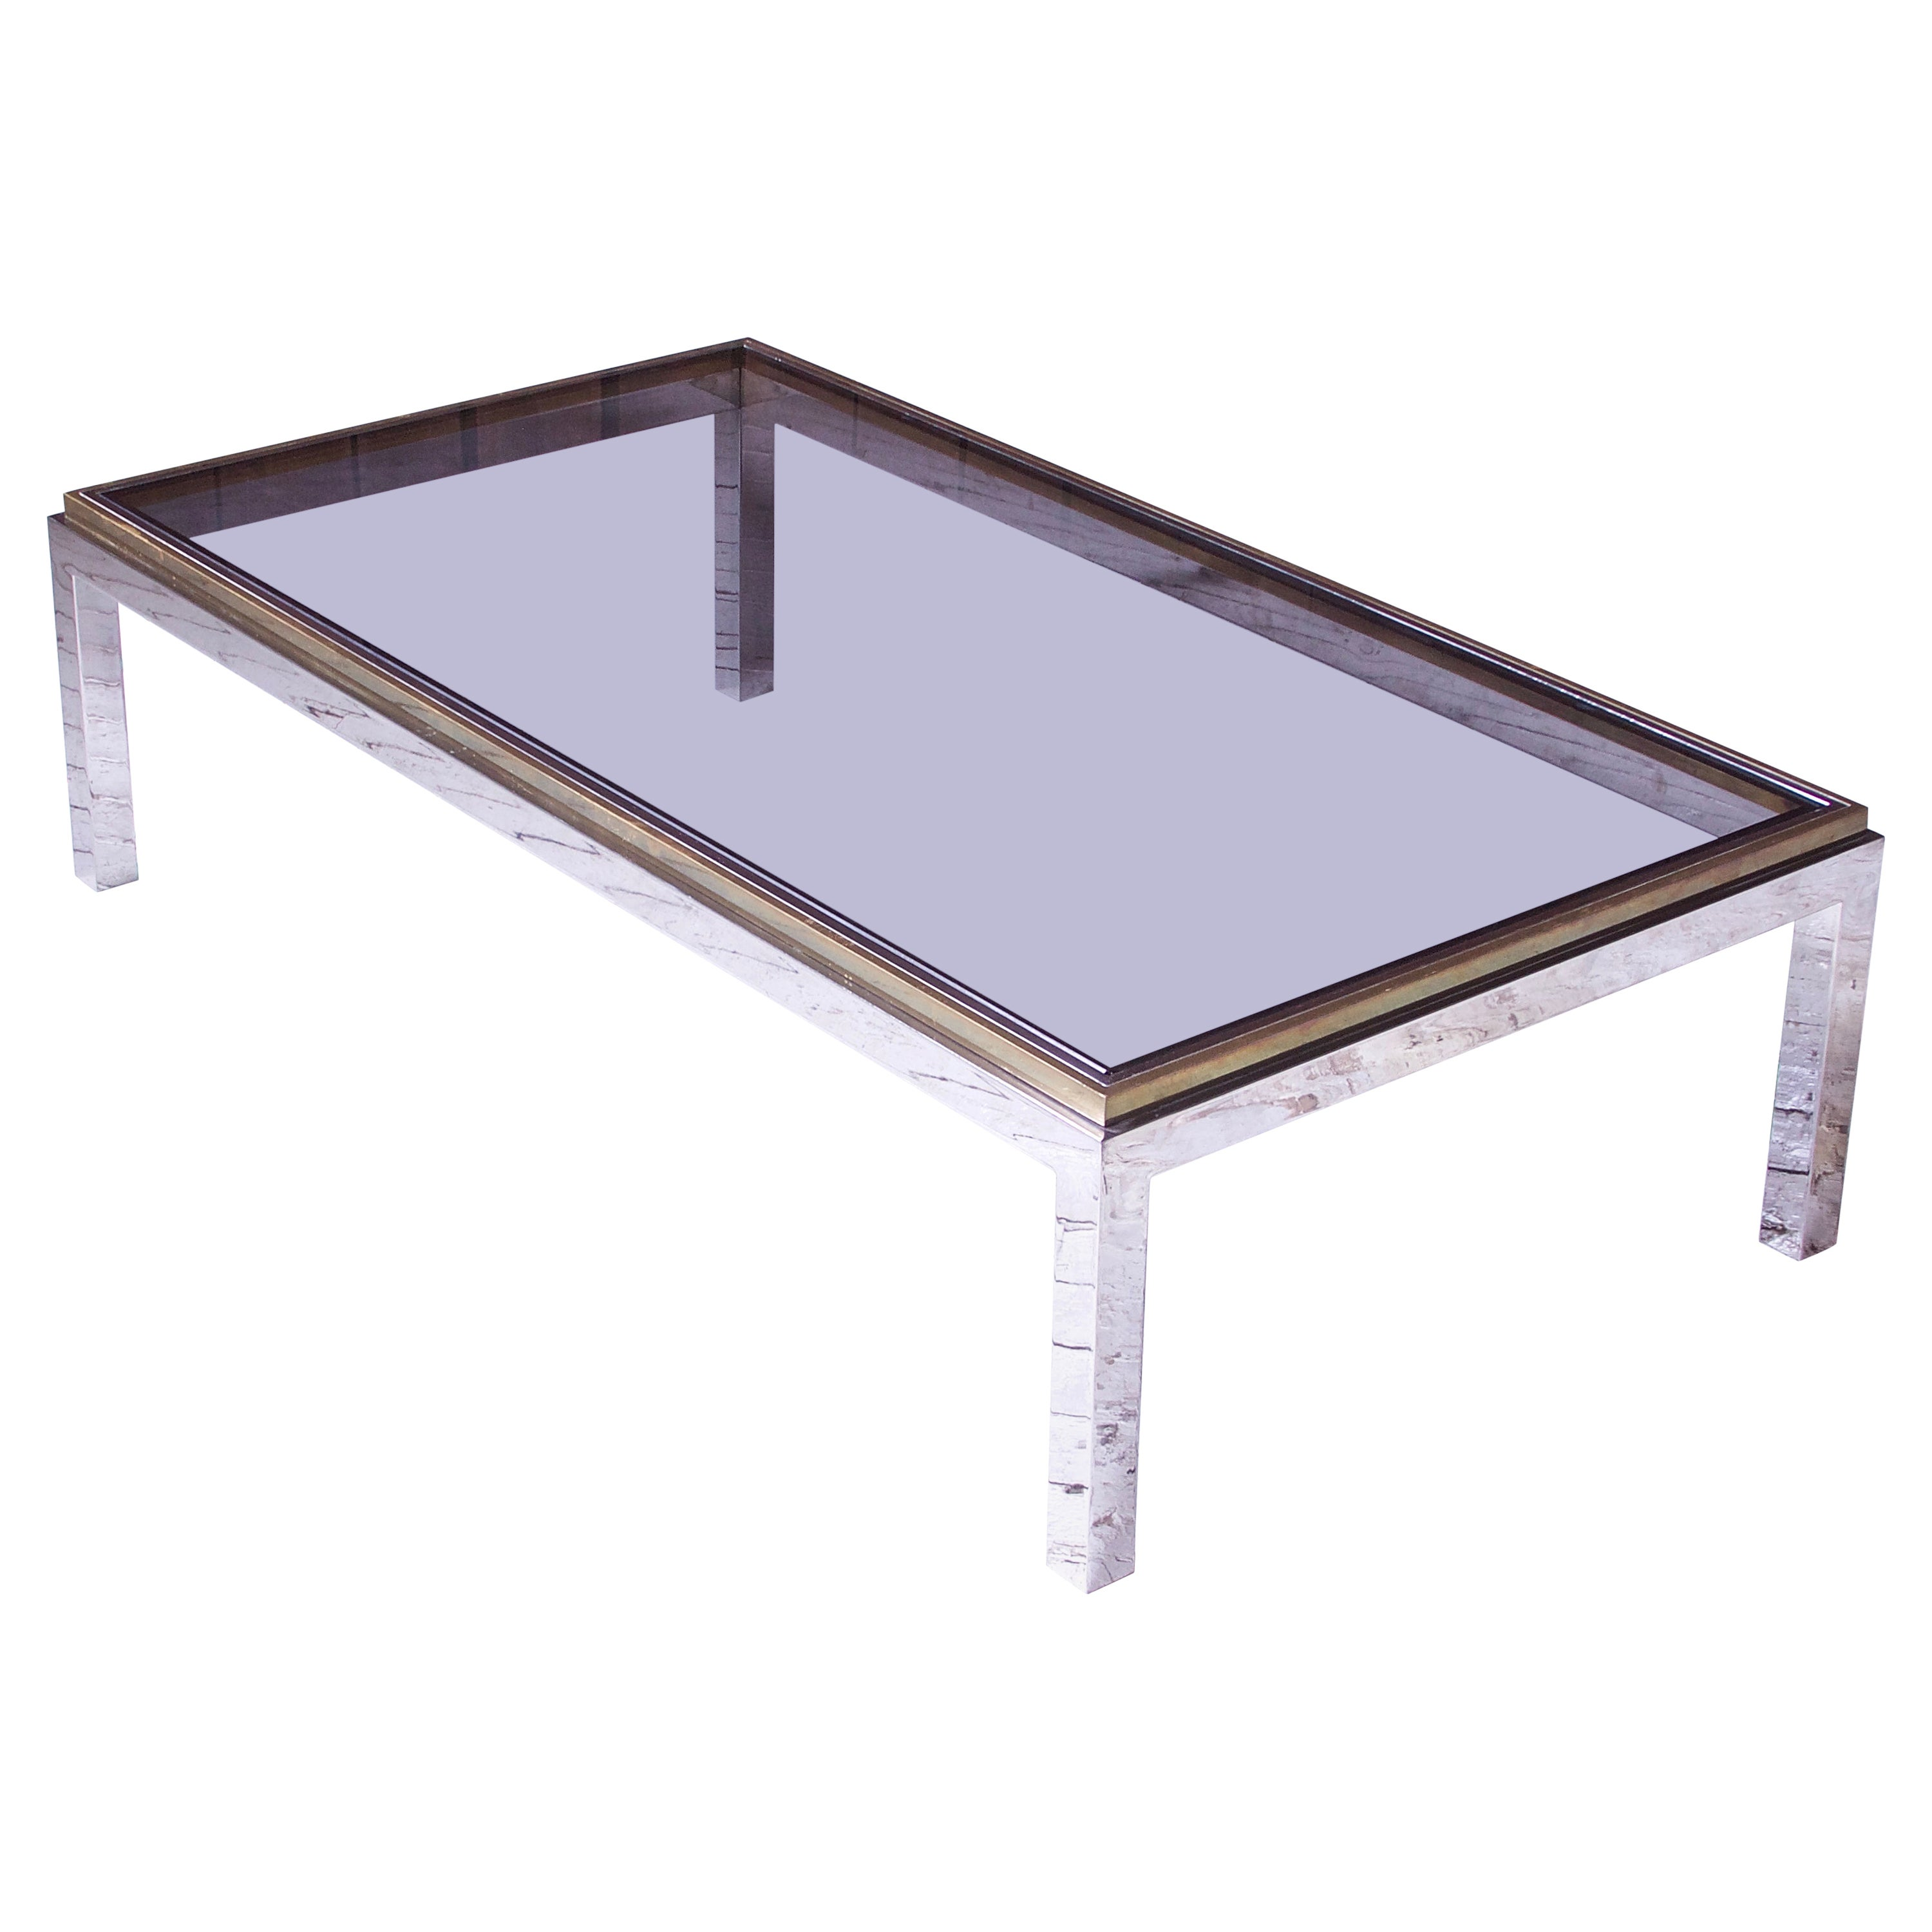 Vintage 'Flaminia' Willy Rizzo Brass & Chrome Coffee Table, 1970s